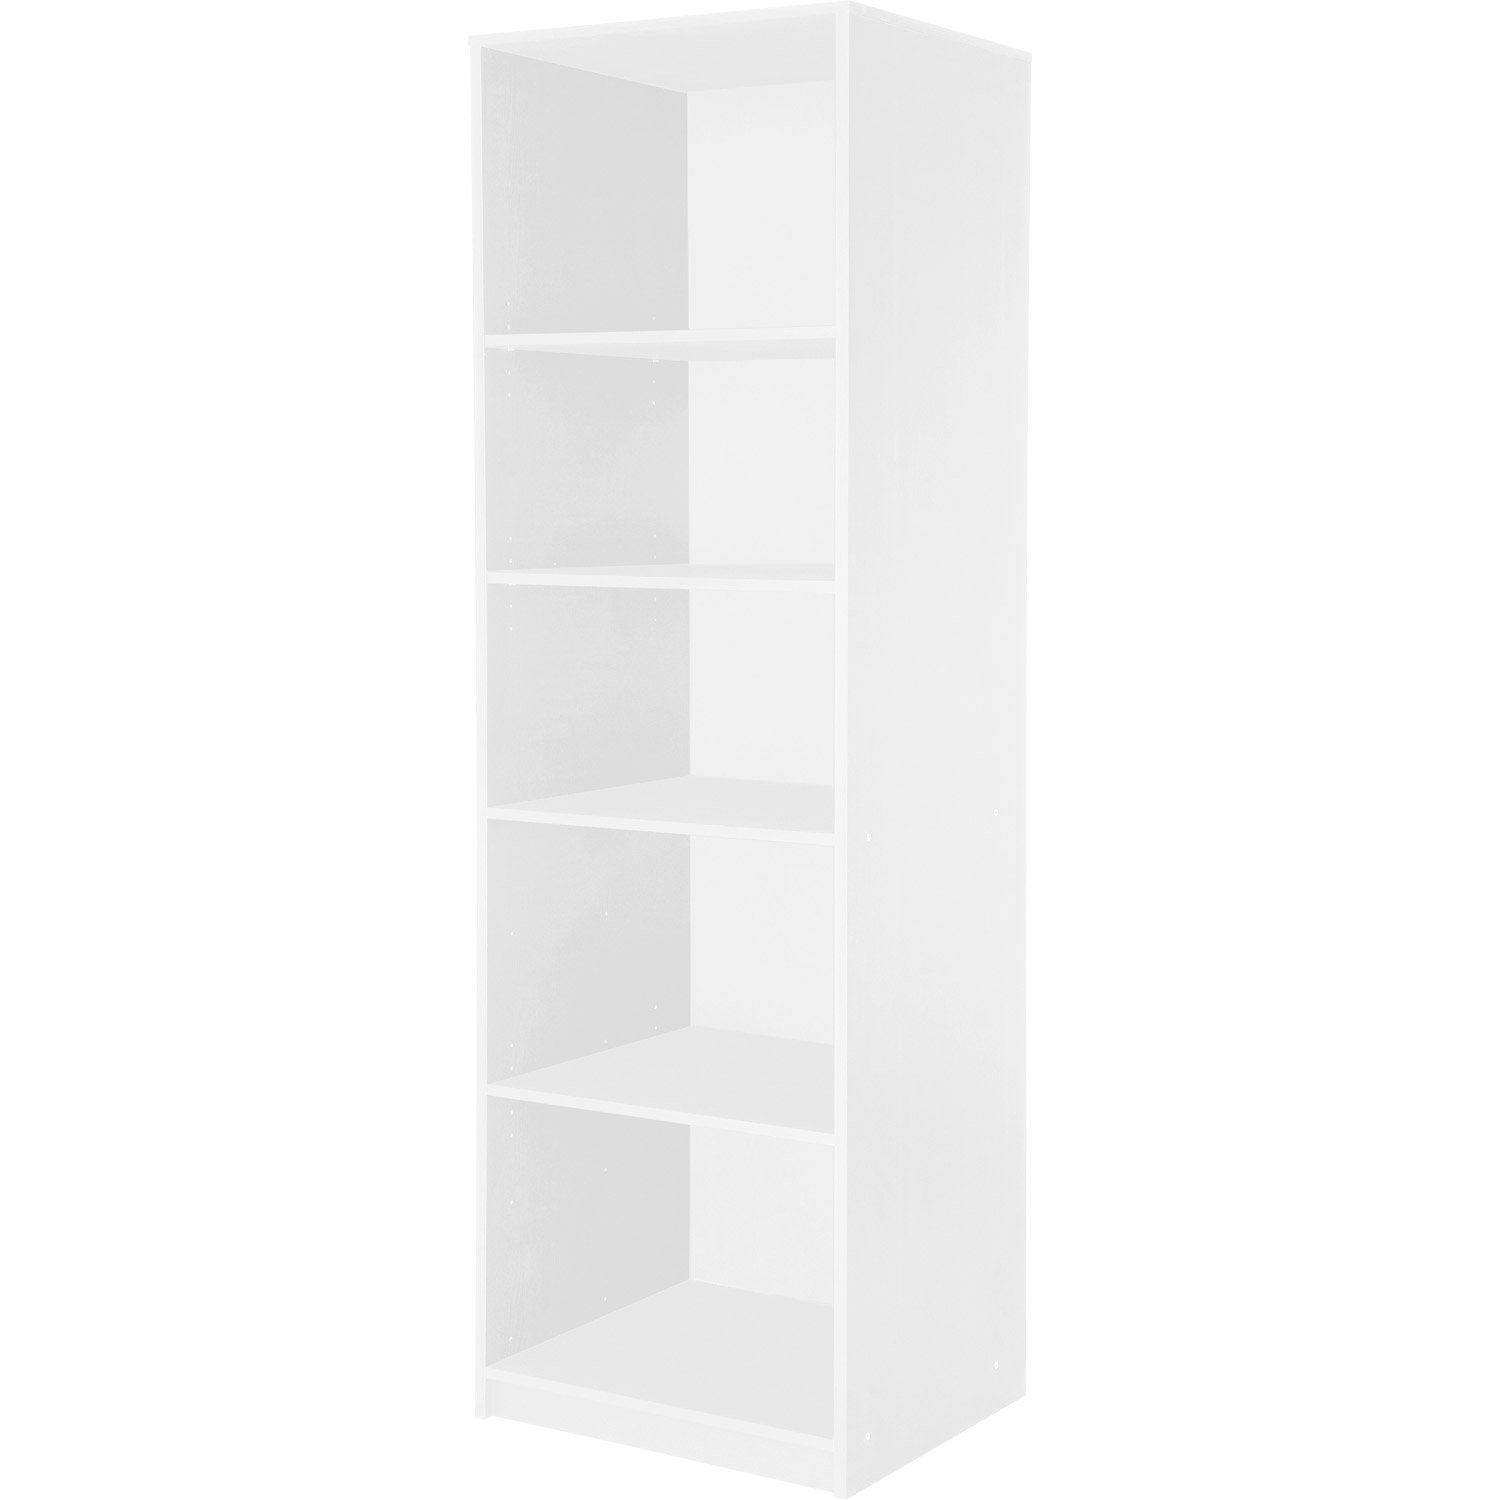 colonne spaceo dressing 61x193x50 cm blanc leroy merlin. Black Bedroom Furniture Sets. Home Design Ideas